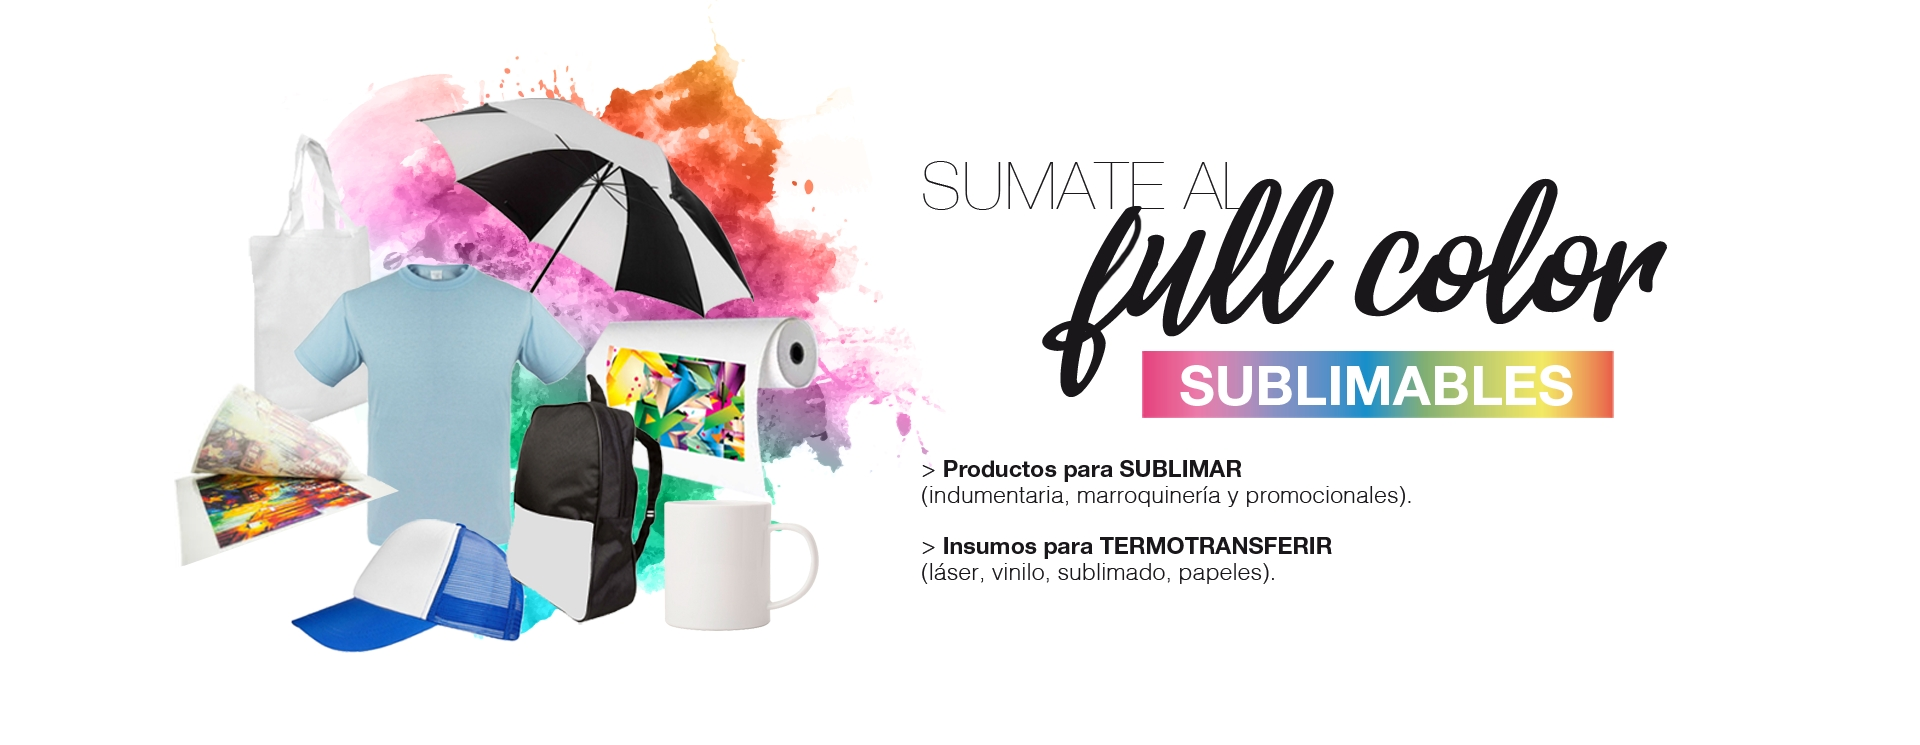 sublimables